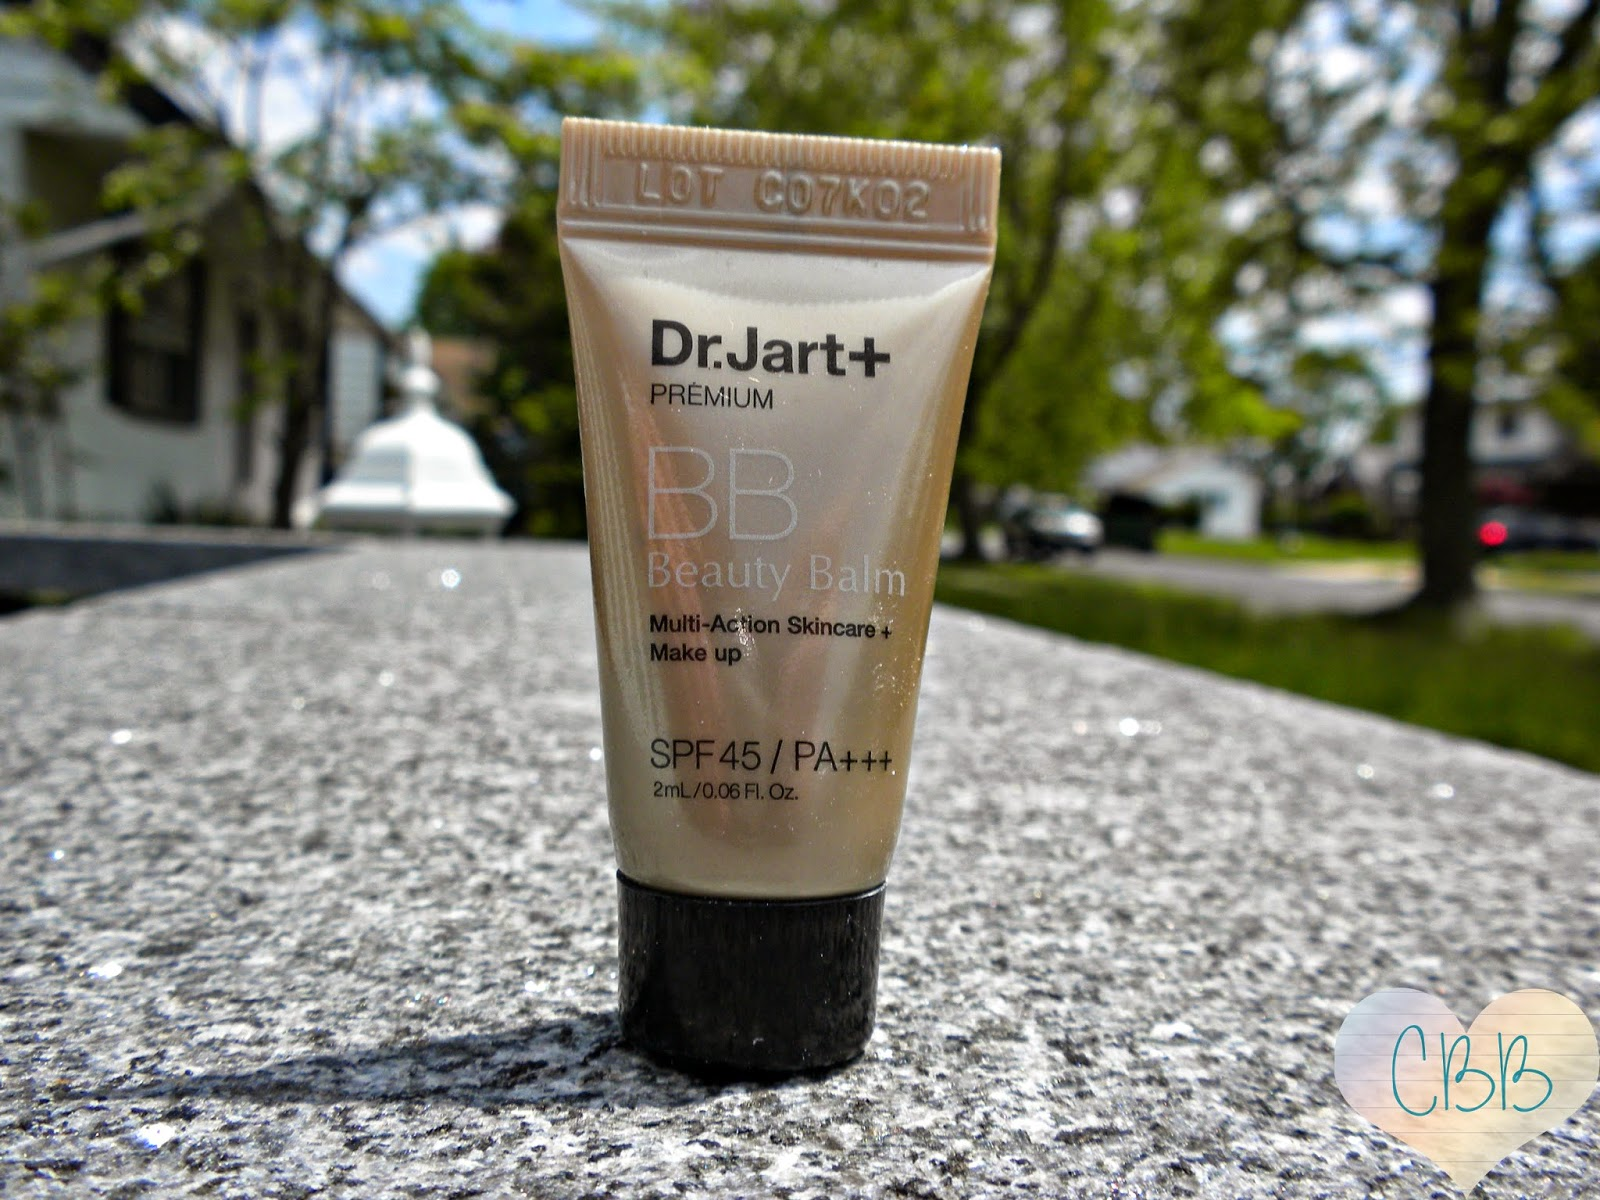 DR. JART+ Premium Beauty Balm SPF 45 ($39 for 1.5oz)